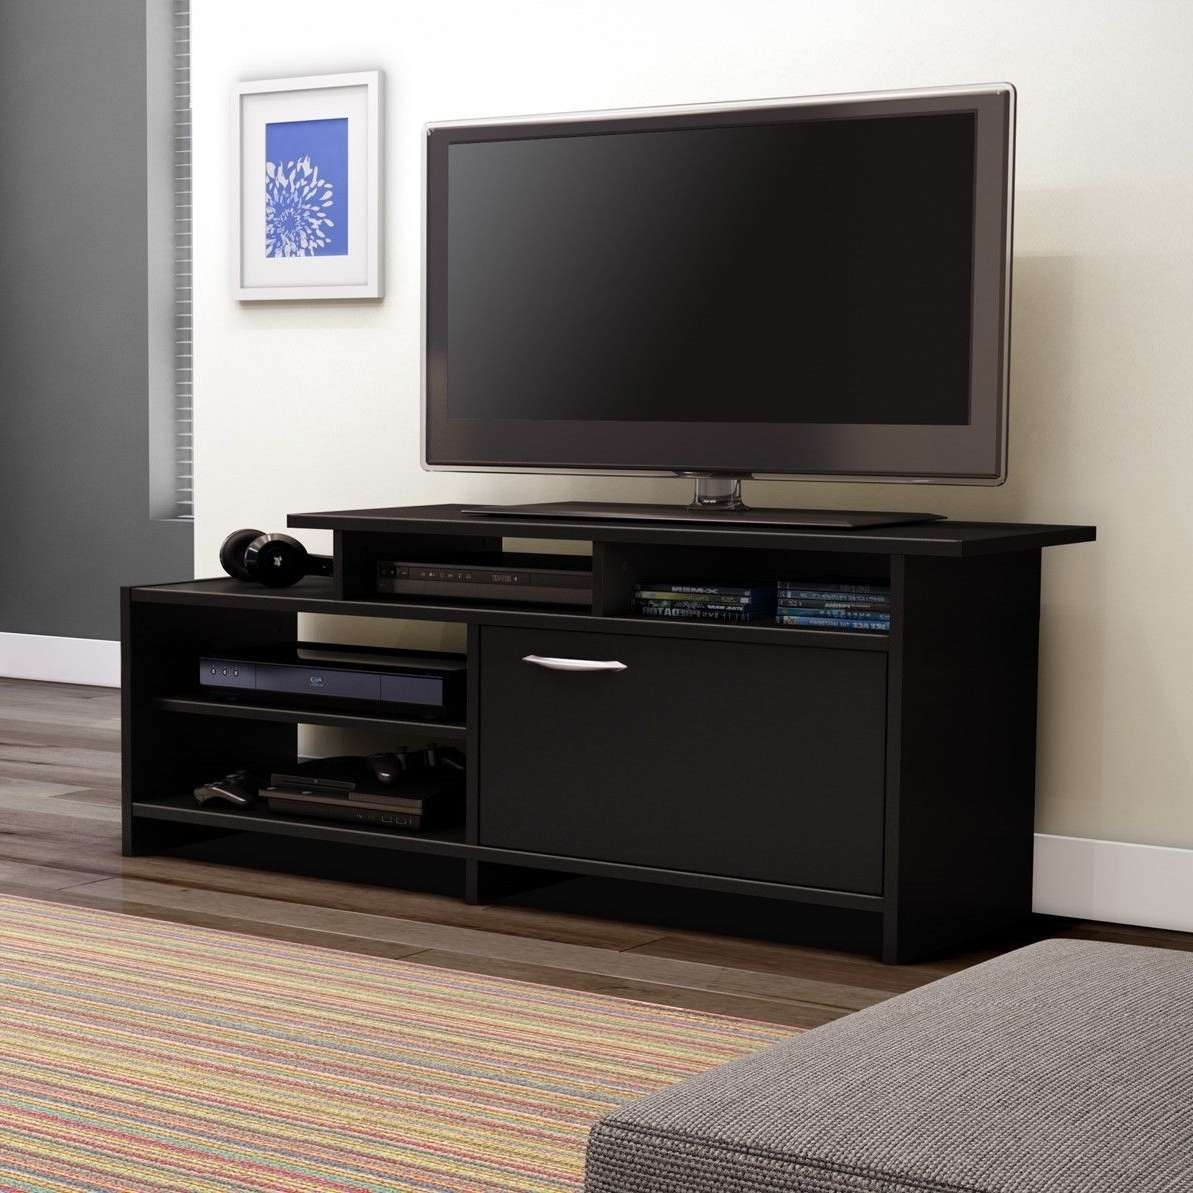 Black Solid Wood Console Table For Tv Stand Having Cabinet Storage Intended For Modern Low Tv Stands (View 3 of 20)